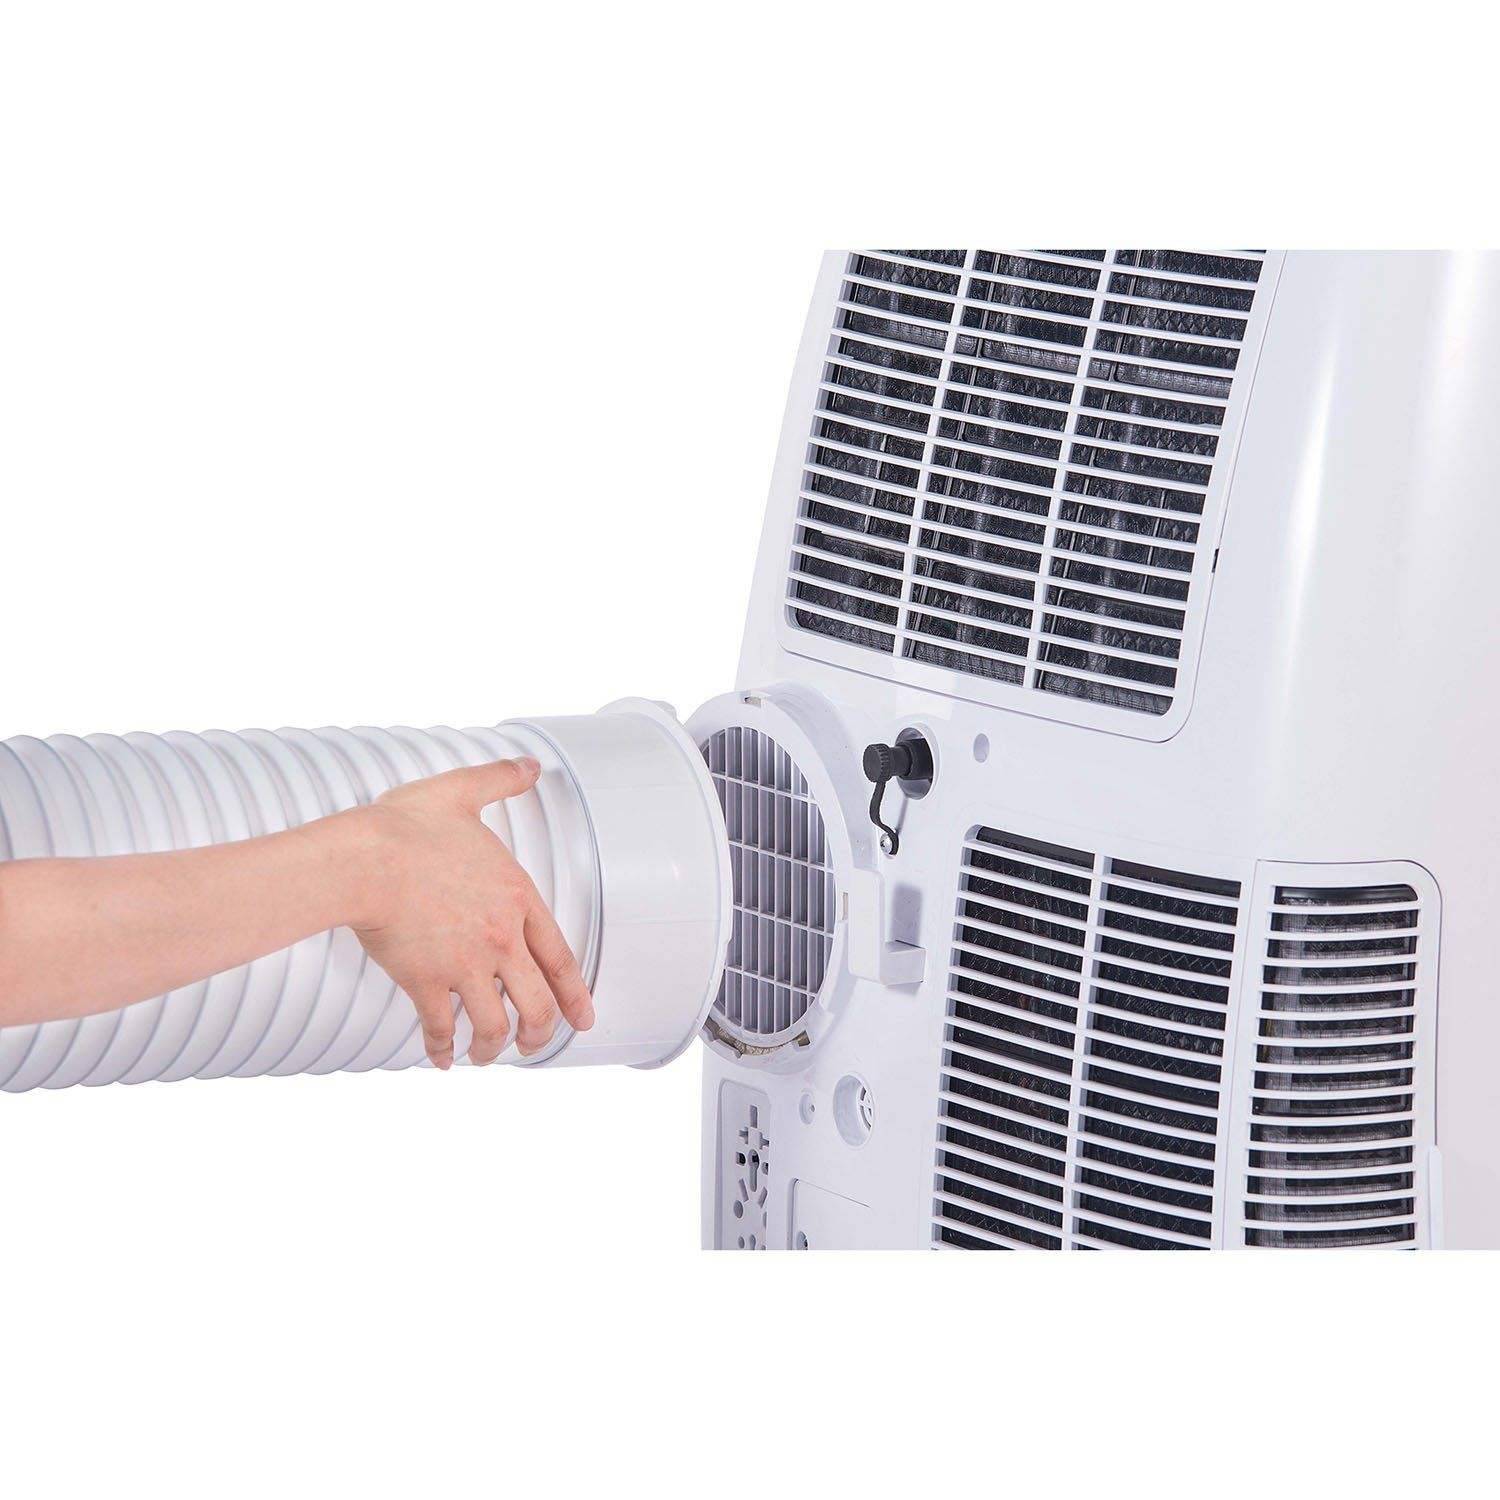 Quilo QP114WK Portable Air Conditioner with Dehumidifier